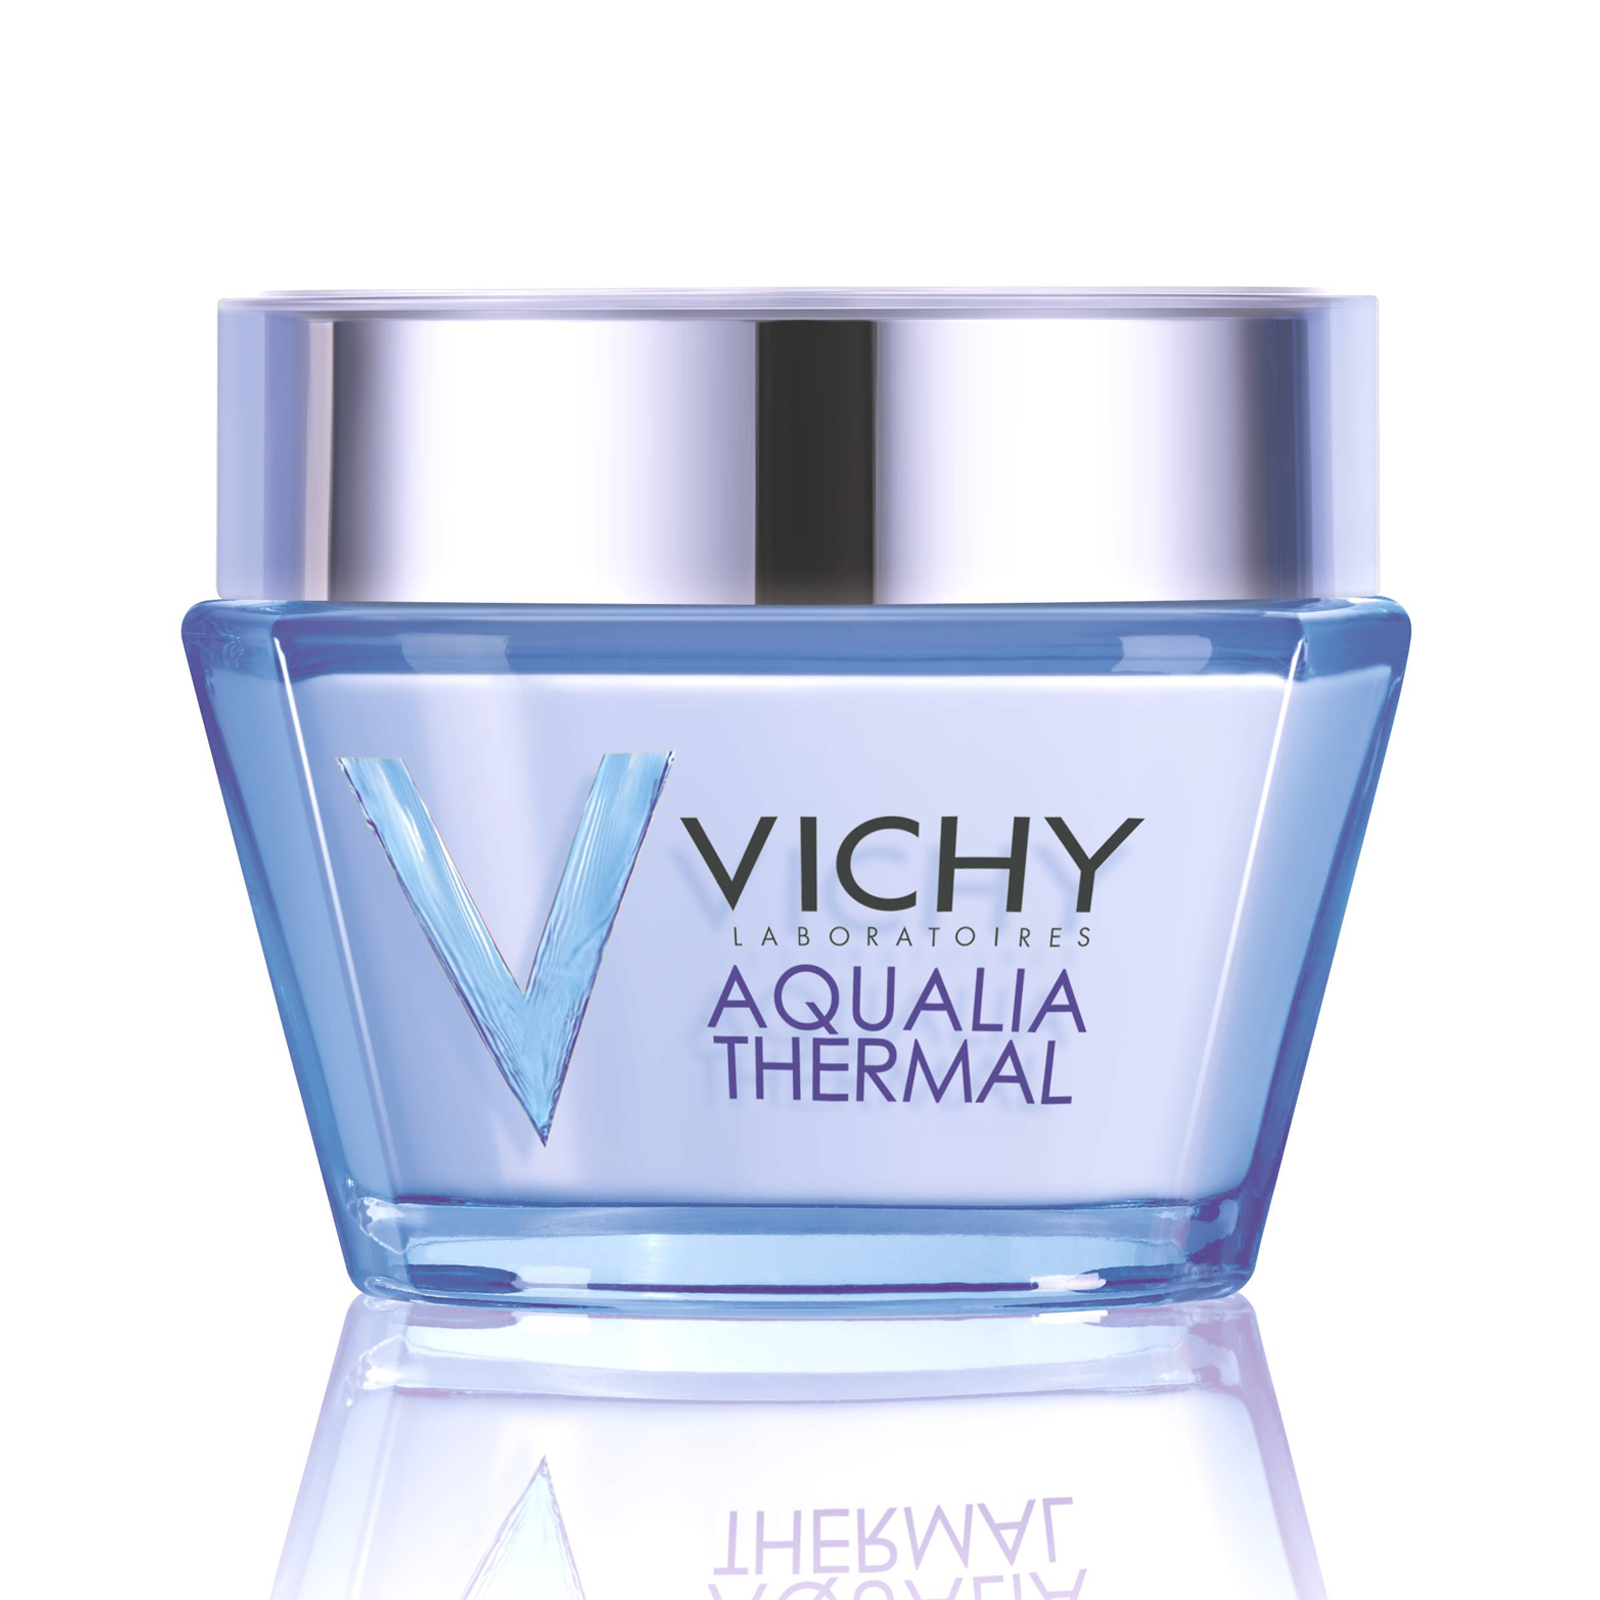 vichy aqualia thermal rich 50ml feelunique. Black Bedroom Furniture Sets. Home Design Ideas